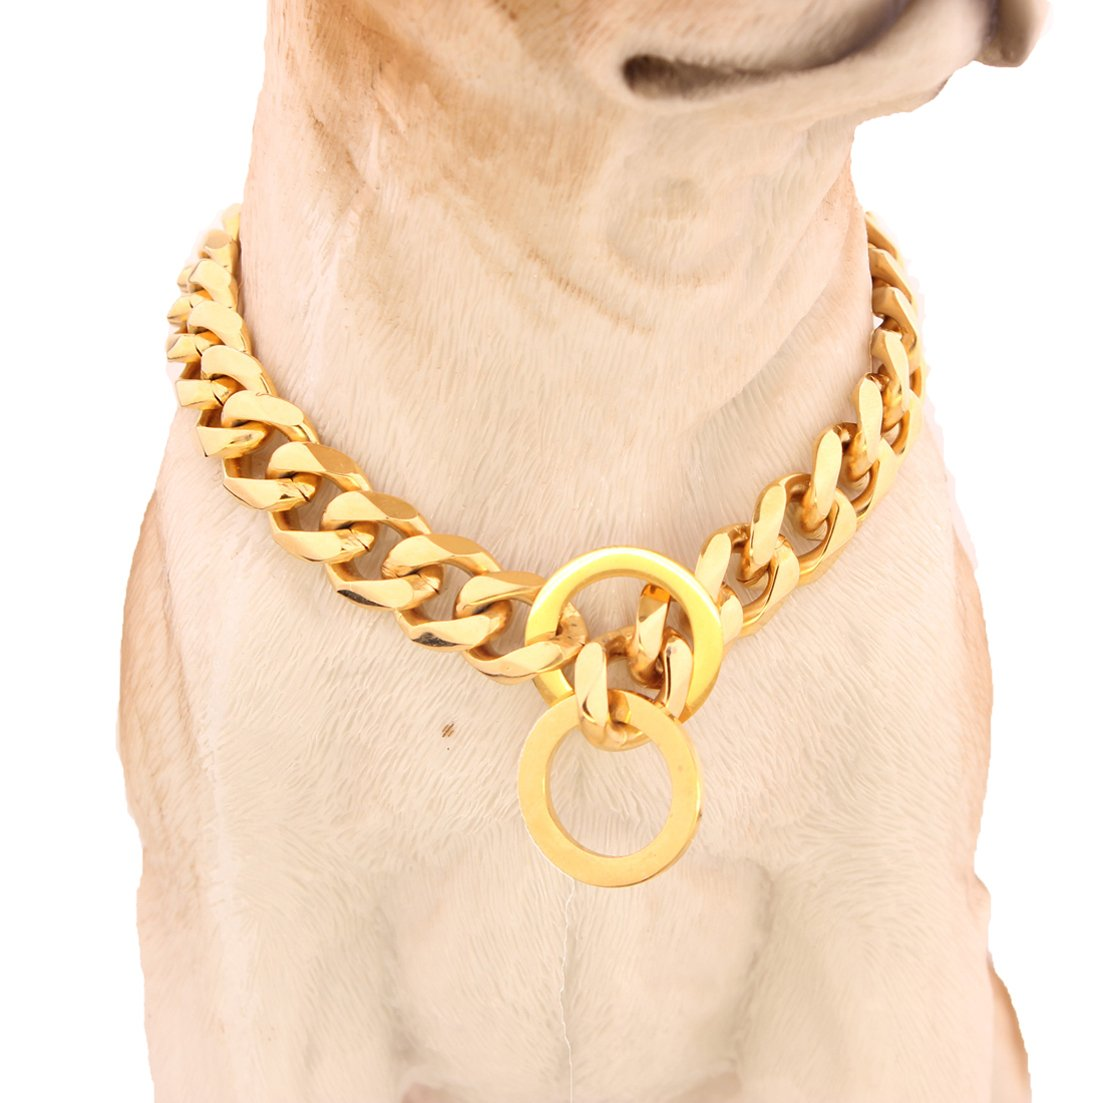 GZMZC 10/12/15/17/19mm Strong Gold Plated Stainless Steel Choker Dog Pet Chain Collars Necklace 12-36inch(24inches,12mm) by GZMZC